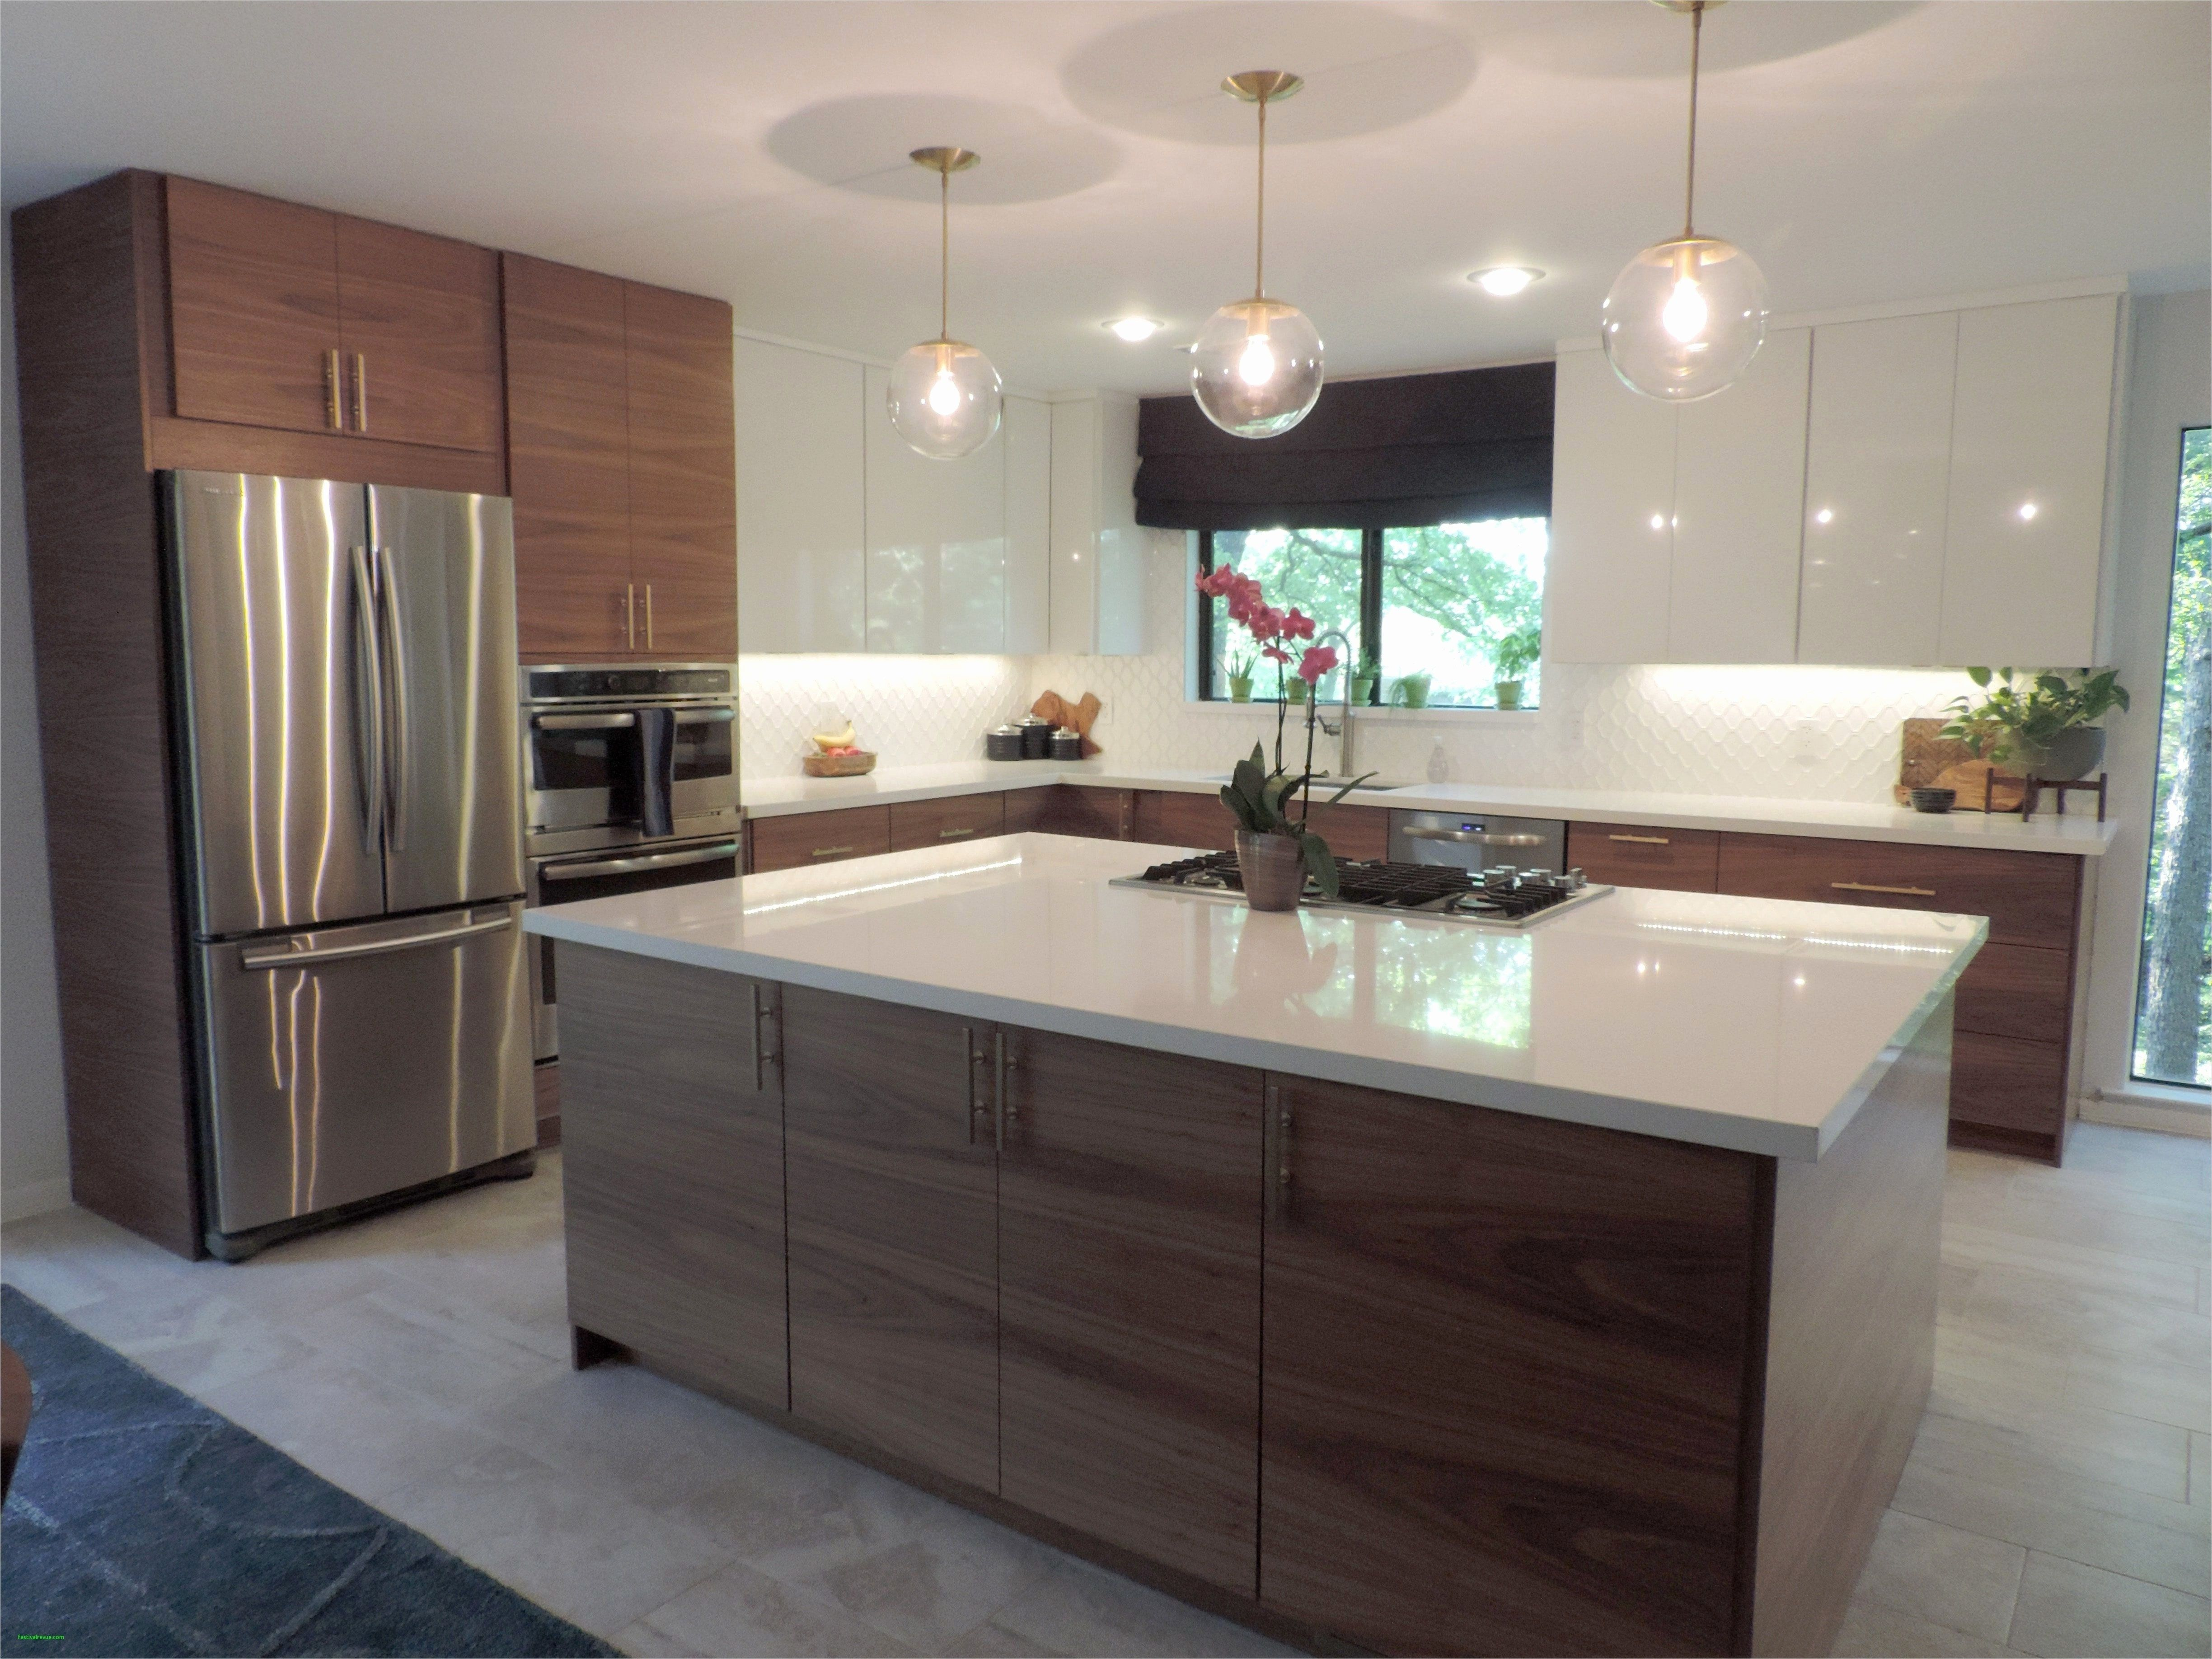 Why Is Best Kitchen Cabinets Brands So Famous? | Kitchens in ...